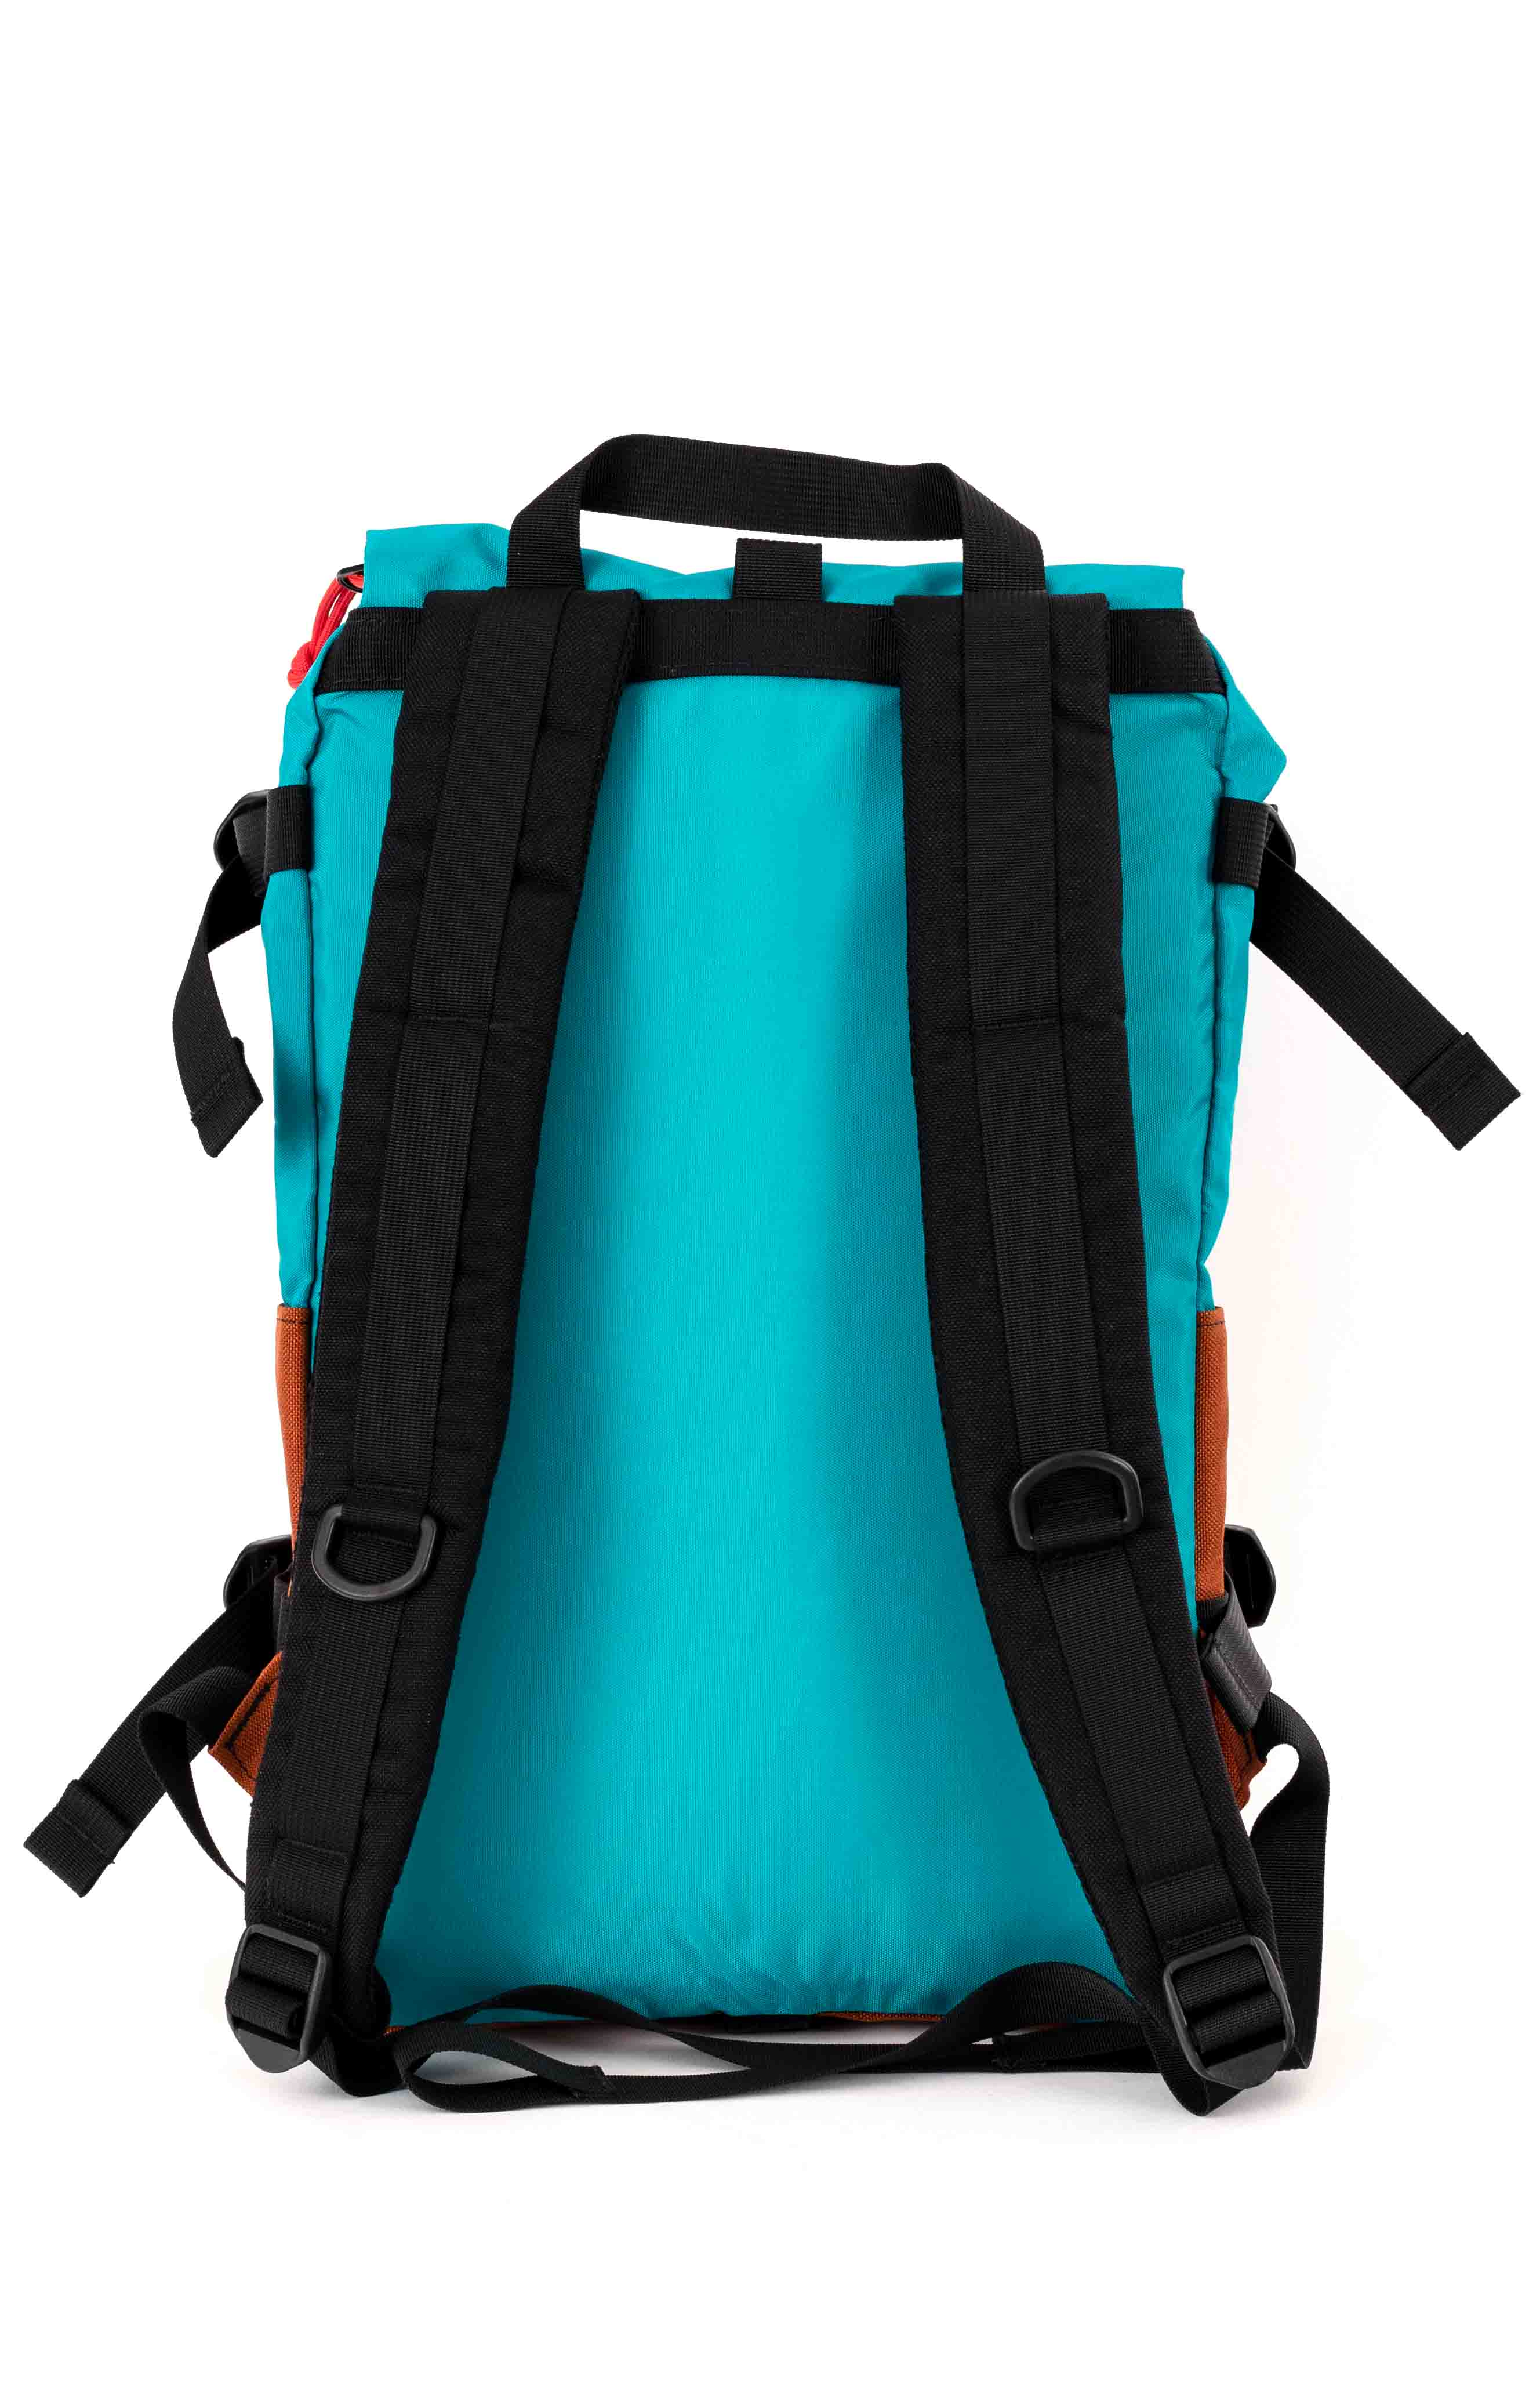 Rover Pack - Turquoise/Clay 3